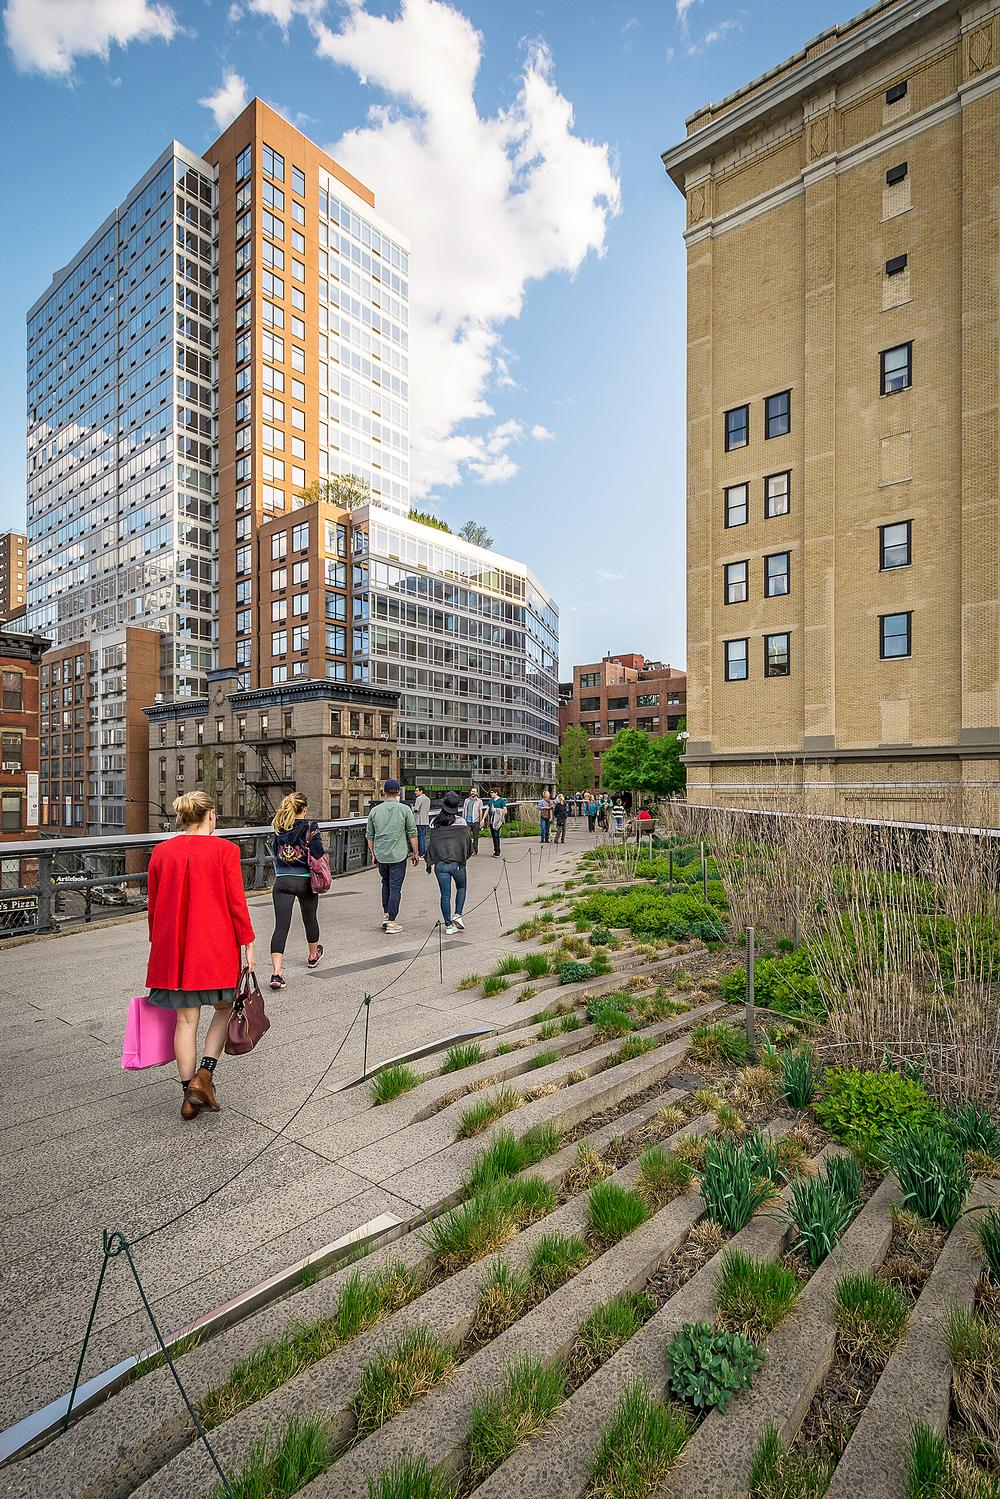 The High Line / Photo: ©Lenny Pridatko, 2018